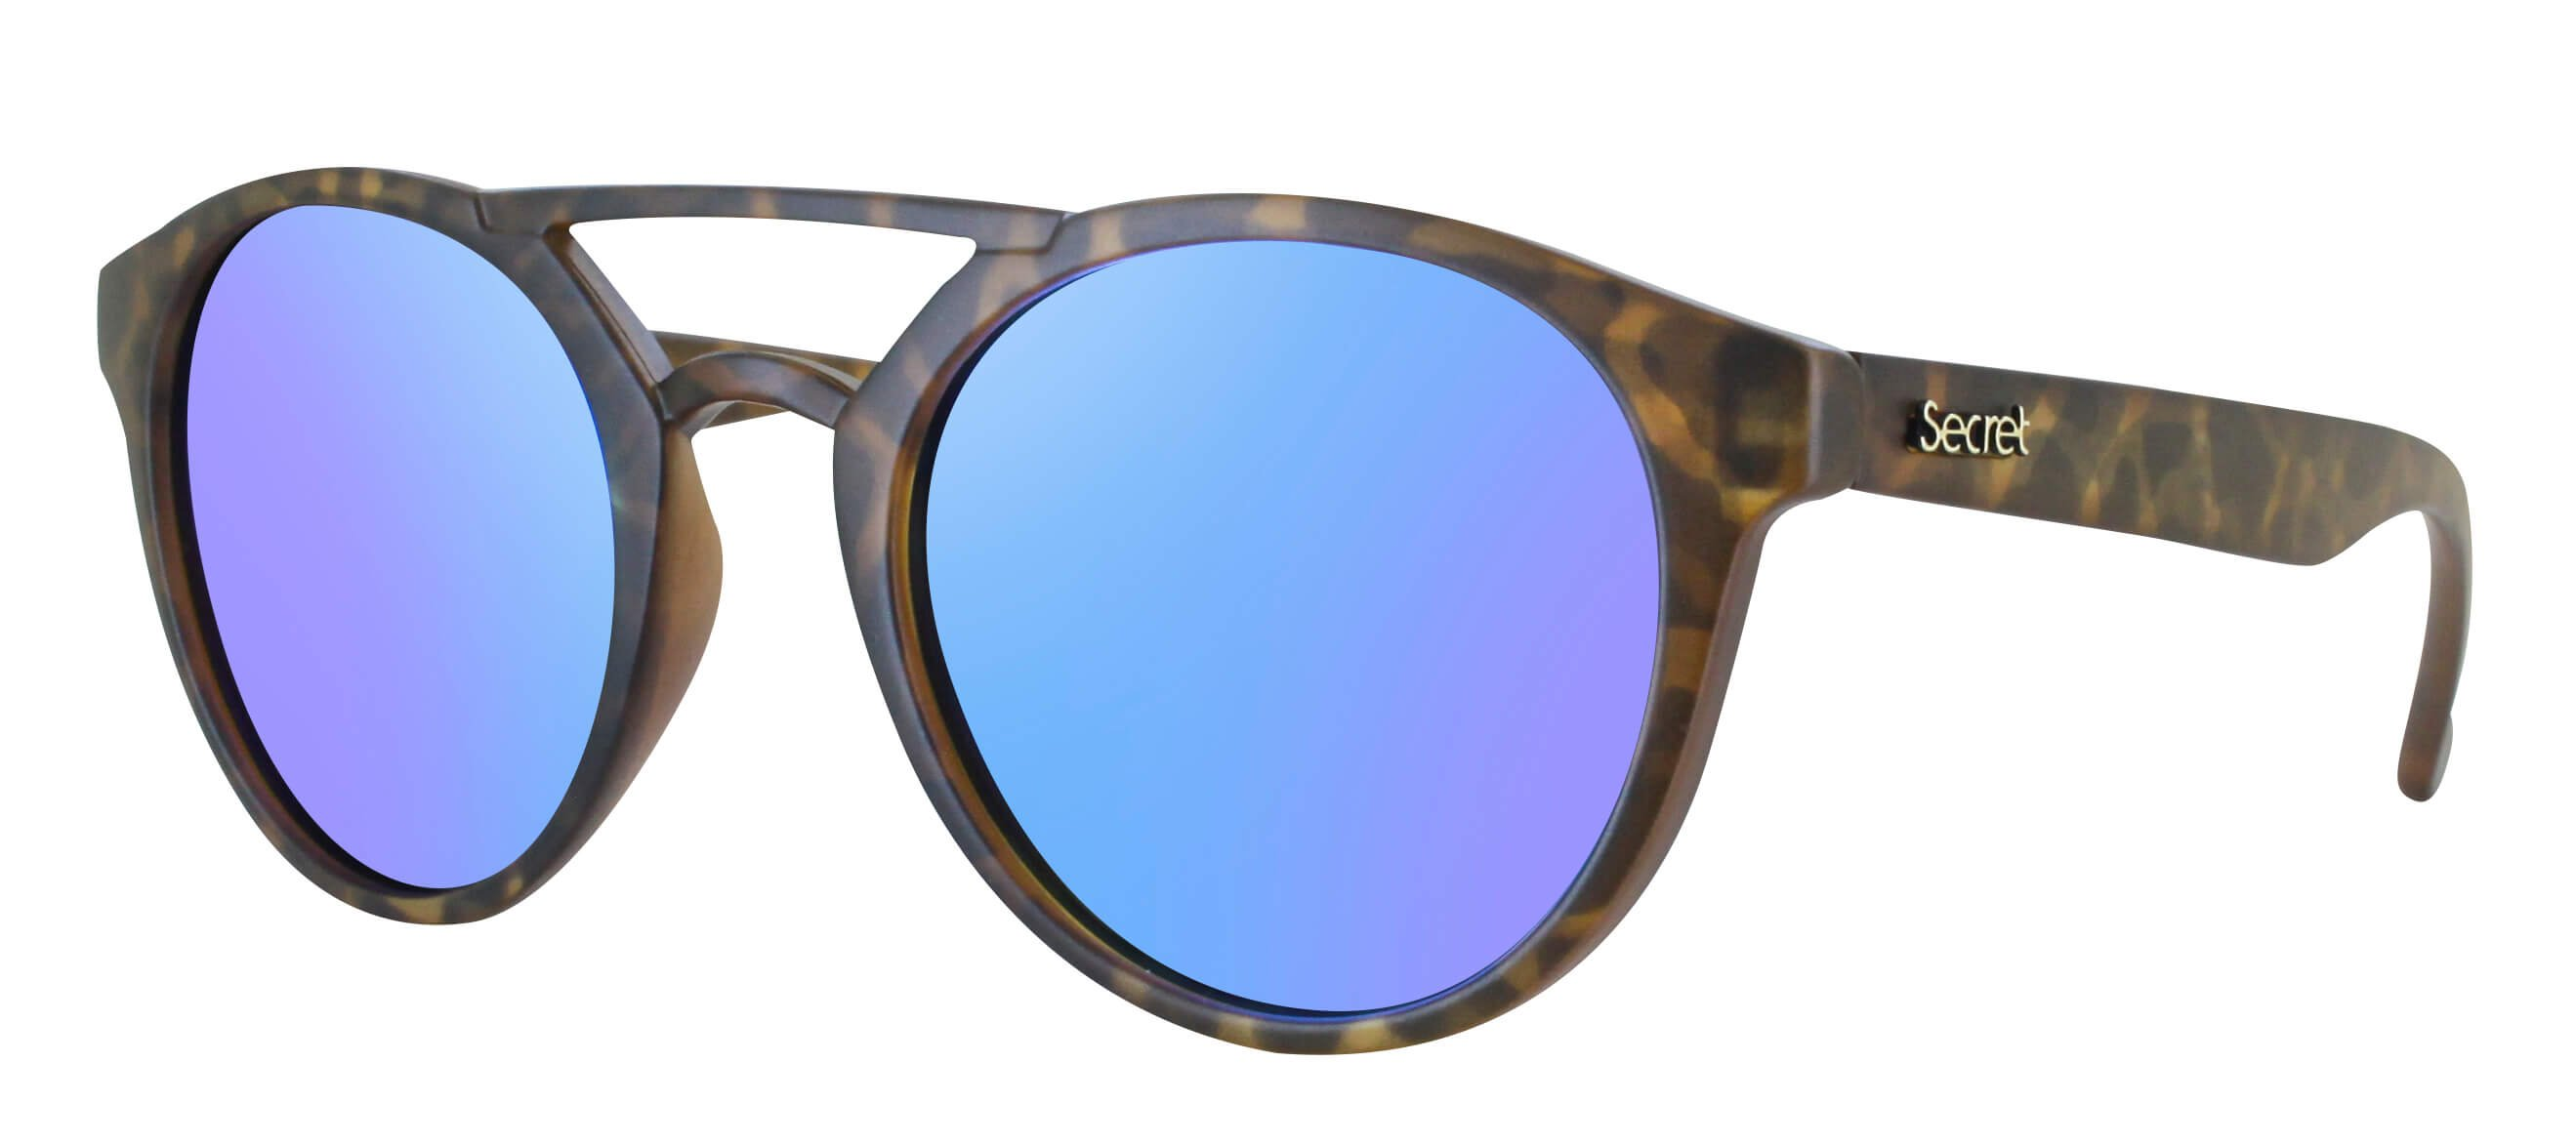 ÓC SECRET BREAKAWAY MATTE HAVANA TURTLE / POLARIZED BLUE